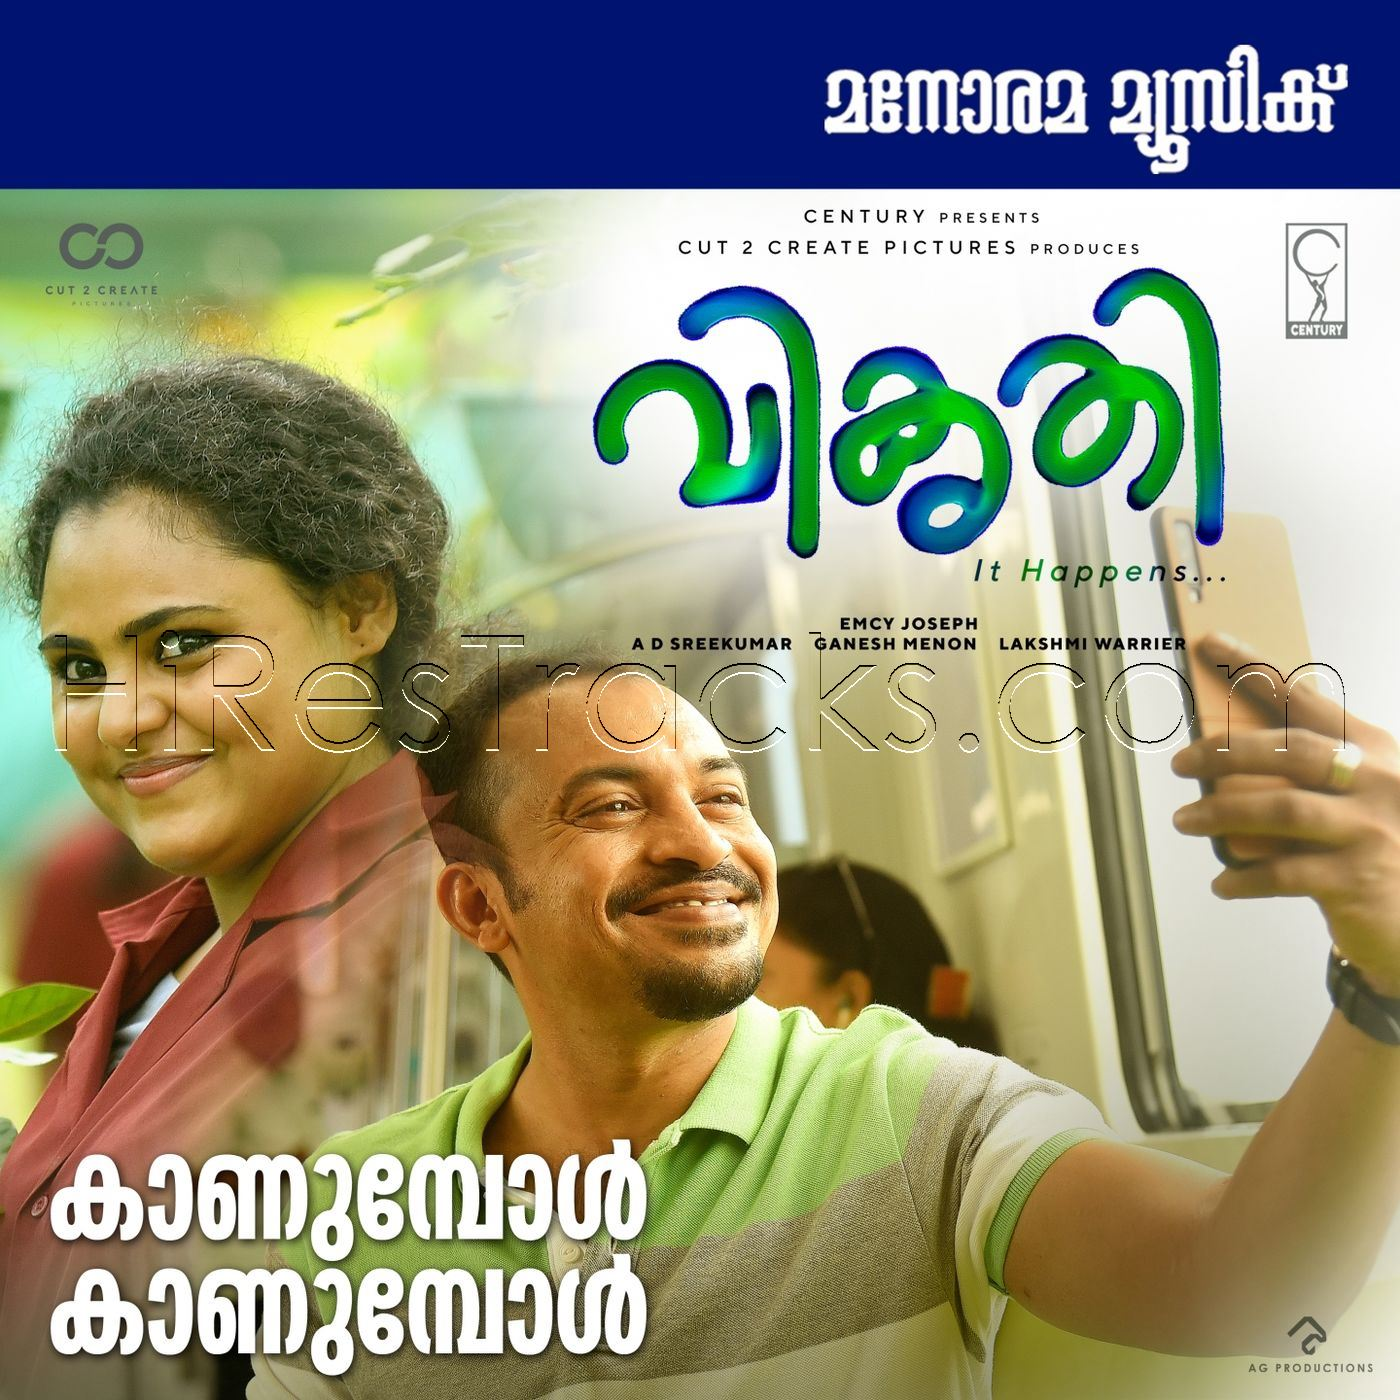 Kanumbol Kanumbol (From Vikruthi) (2019) (Bijibal) (Manorama Music) [Digital-RIP-FLAC]